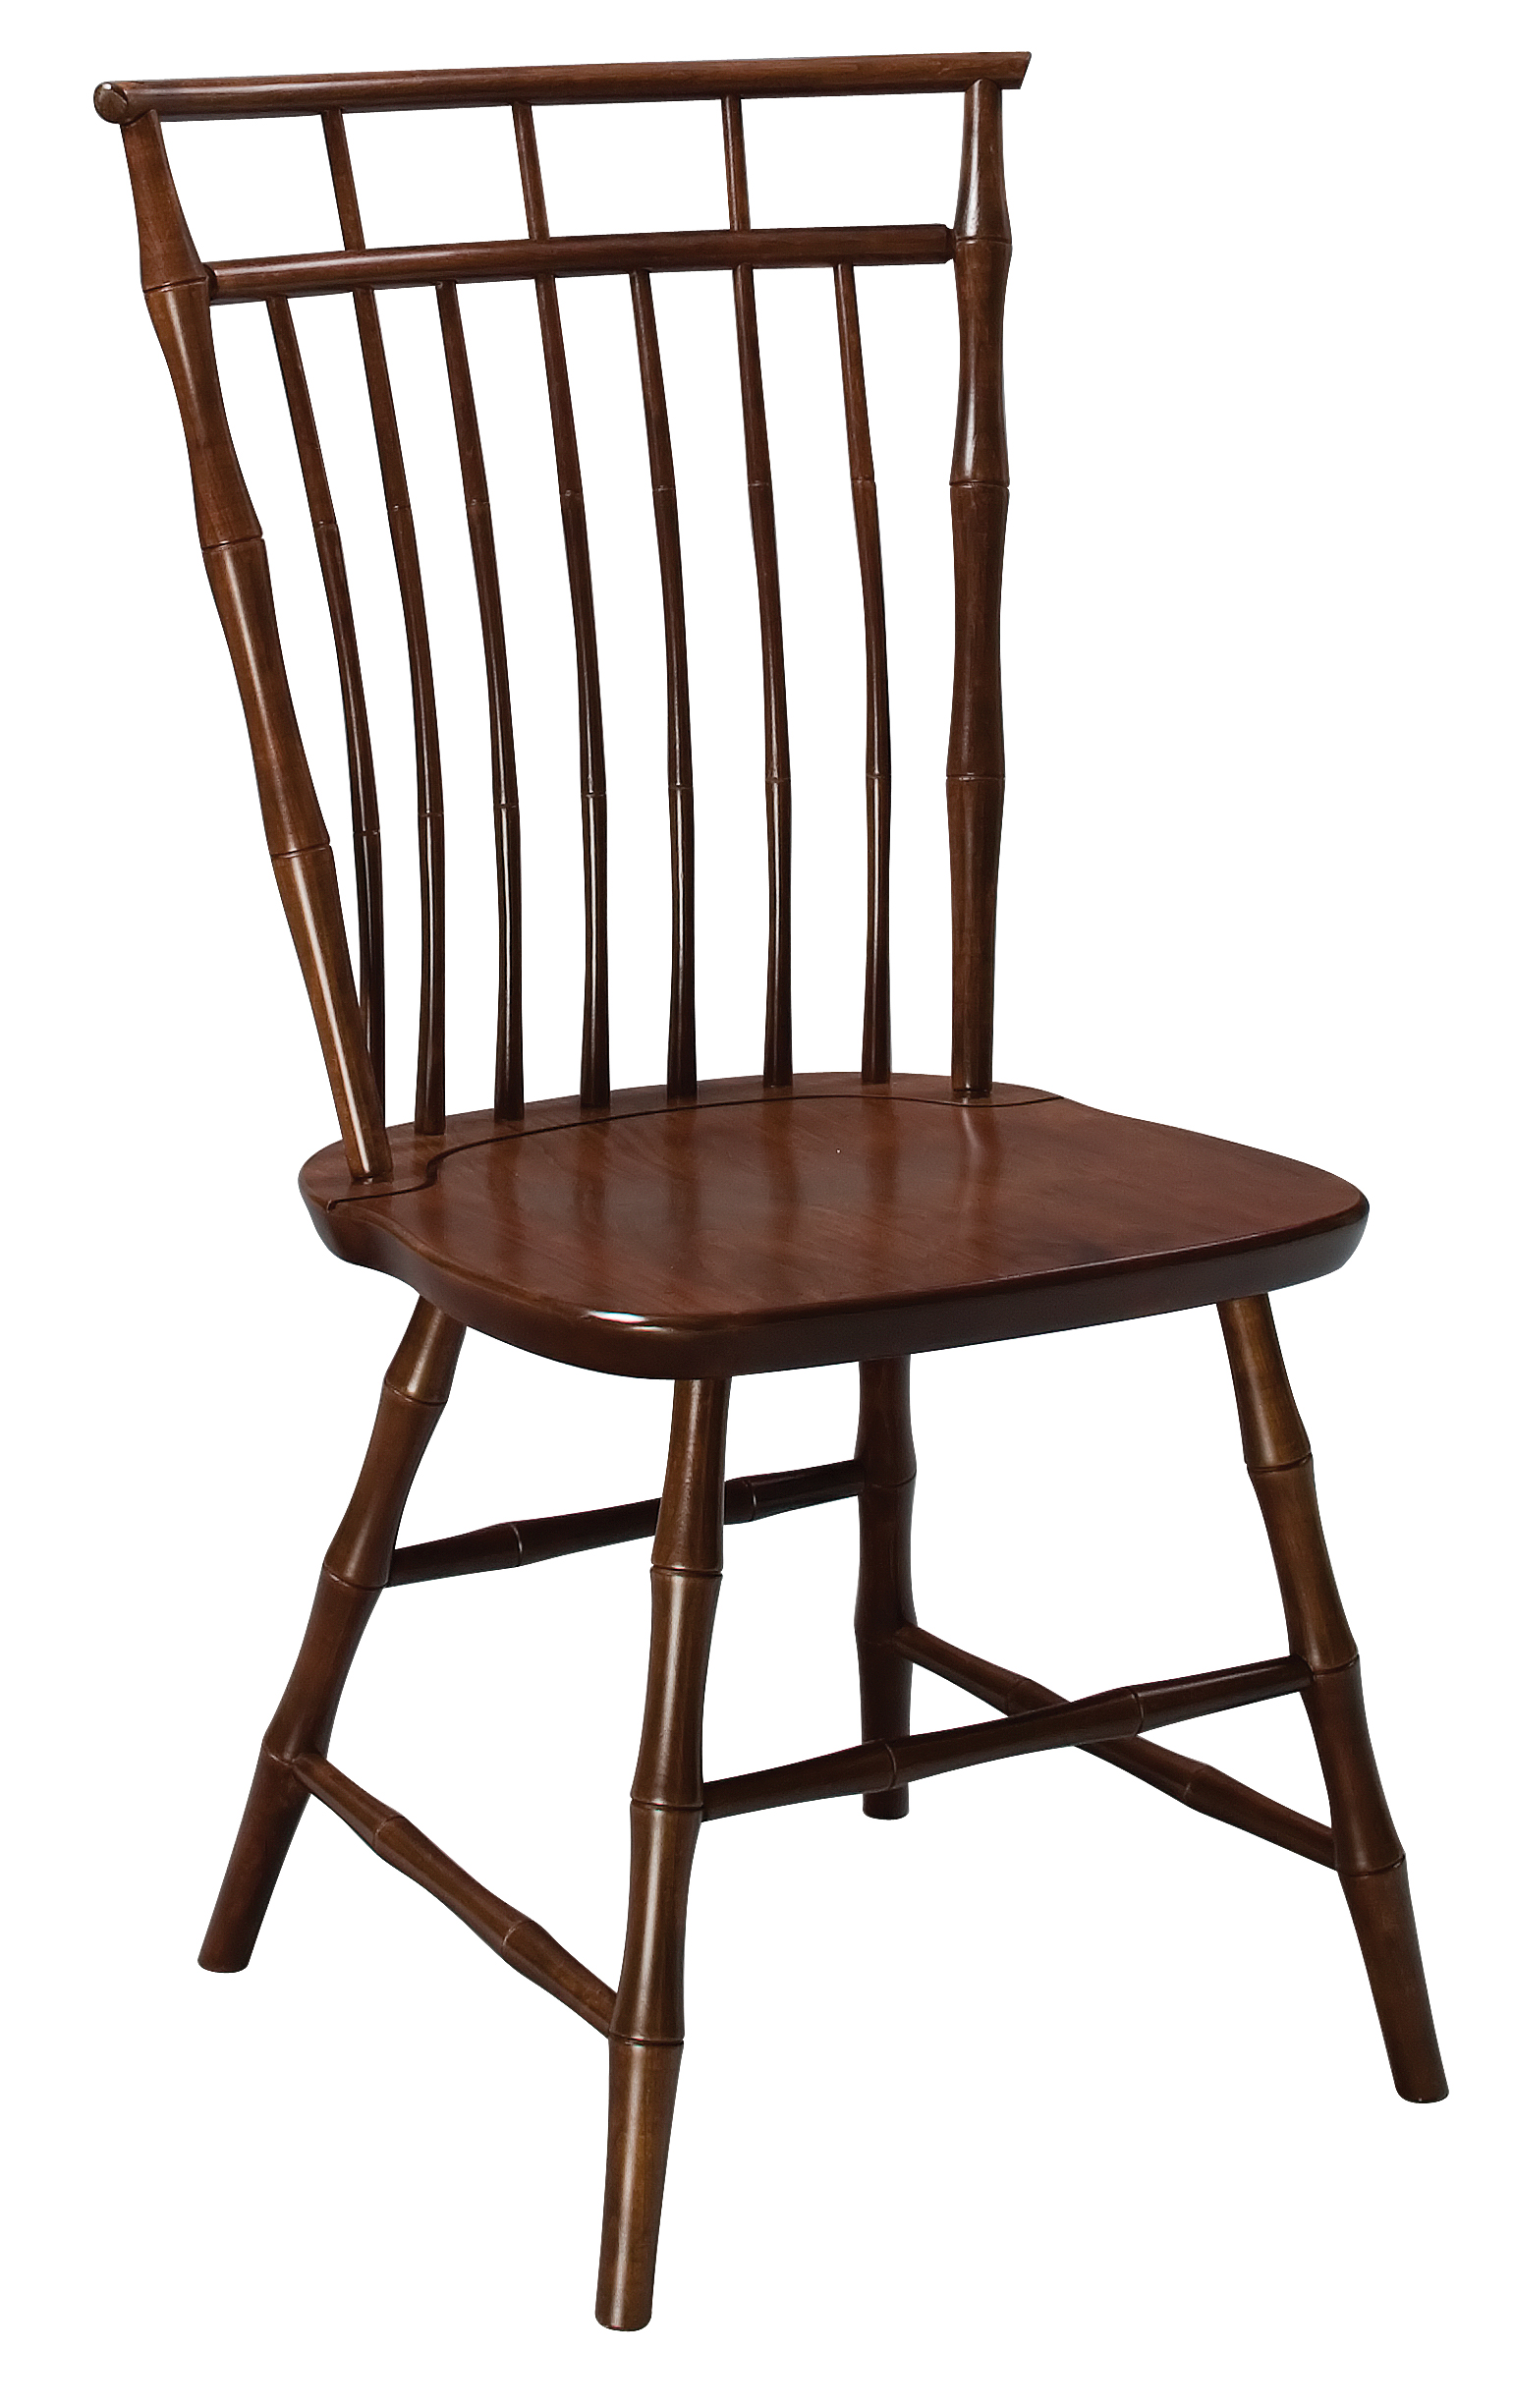 unfinished windsor chairs smartseat chair protector eh birdcage amish furniture connections